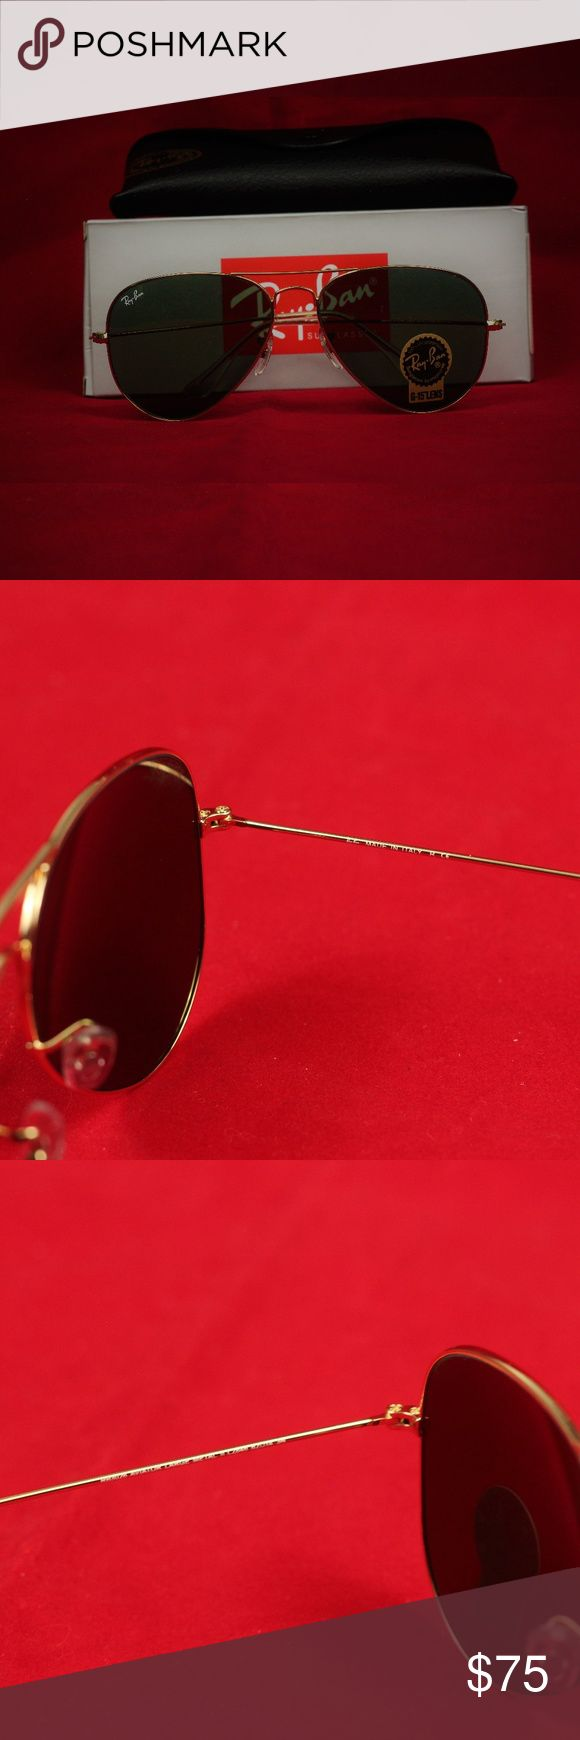 Authentic Ray Ban Aviator Sunglasses Brand New! 100% Authentic Guaranteed or your money back!   Size: 58 mm Lens (Perfect for smaller faces) 62 mm Lens (Perfect for larger heads)  Color: Gold frame, Green G-15 Lens  Includes all documentation, box, cleaning cloth, case, and sunglasses Ray-Ban Accessories Sunglasses